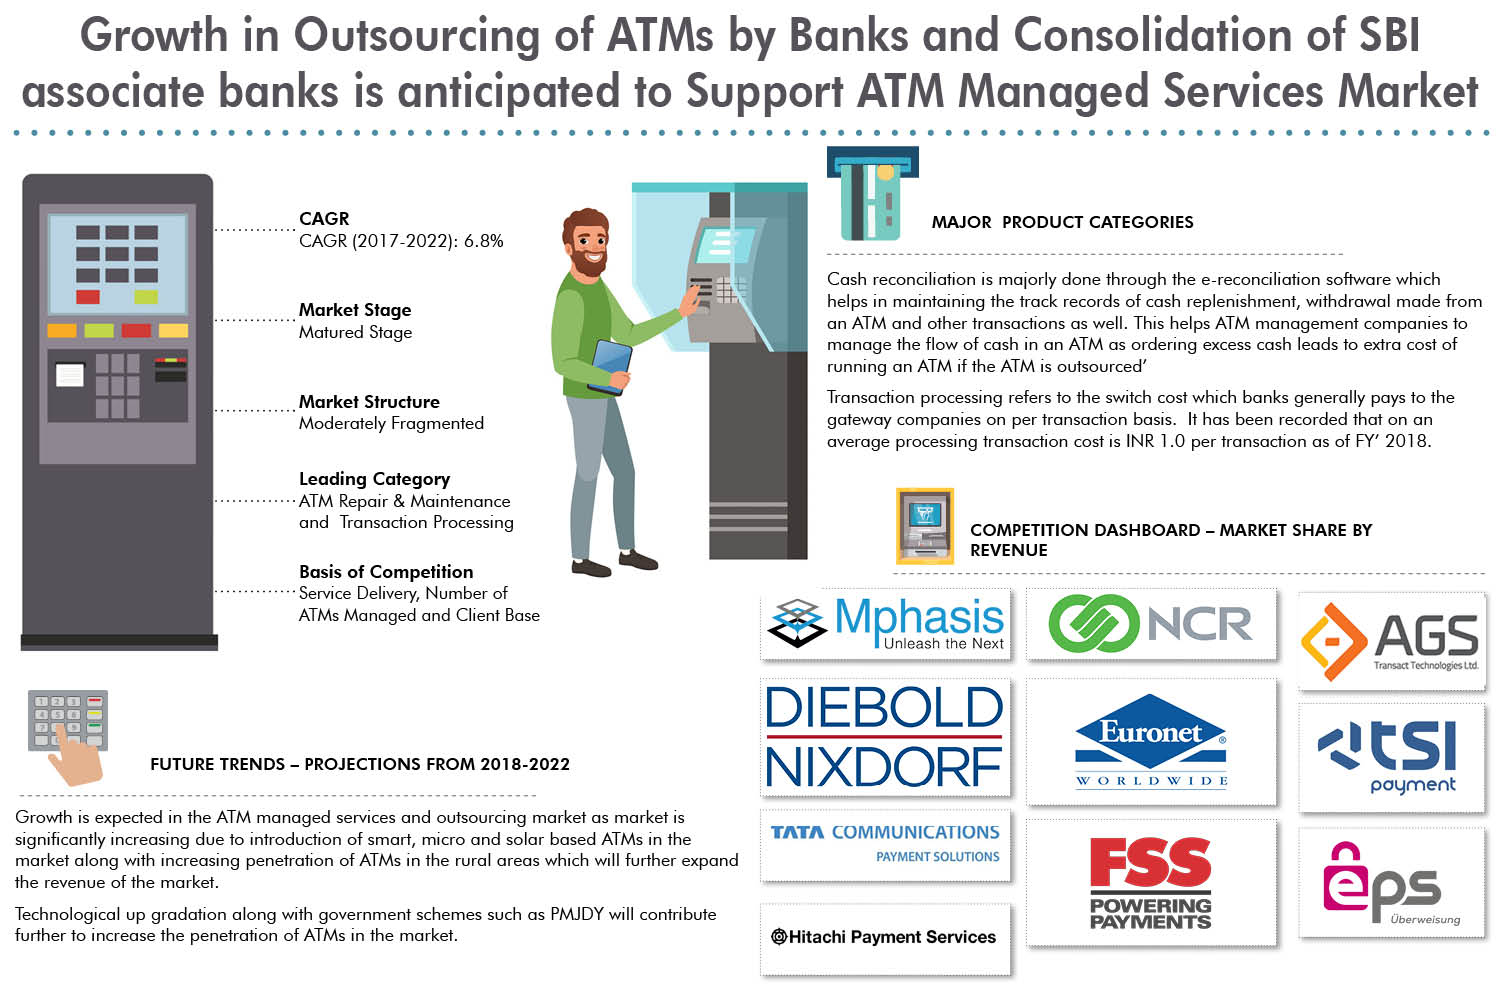 India ATM Managed Services Market